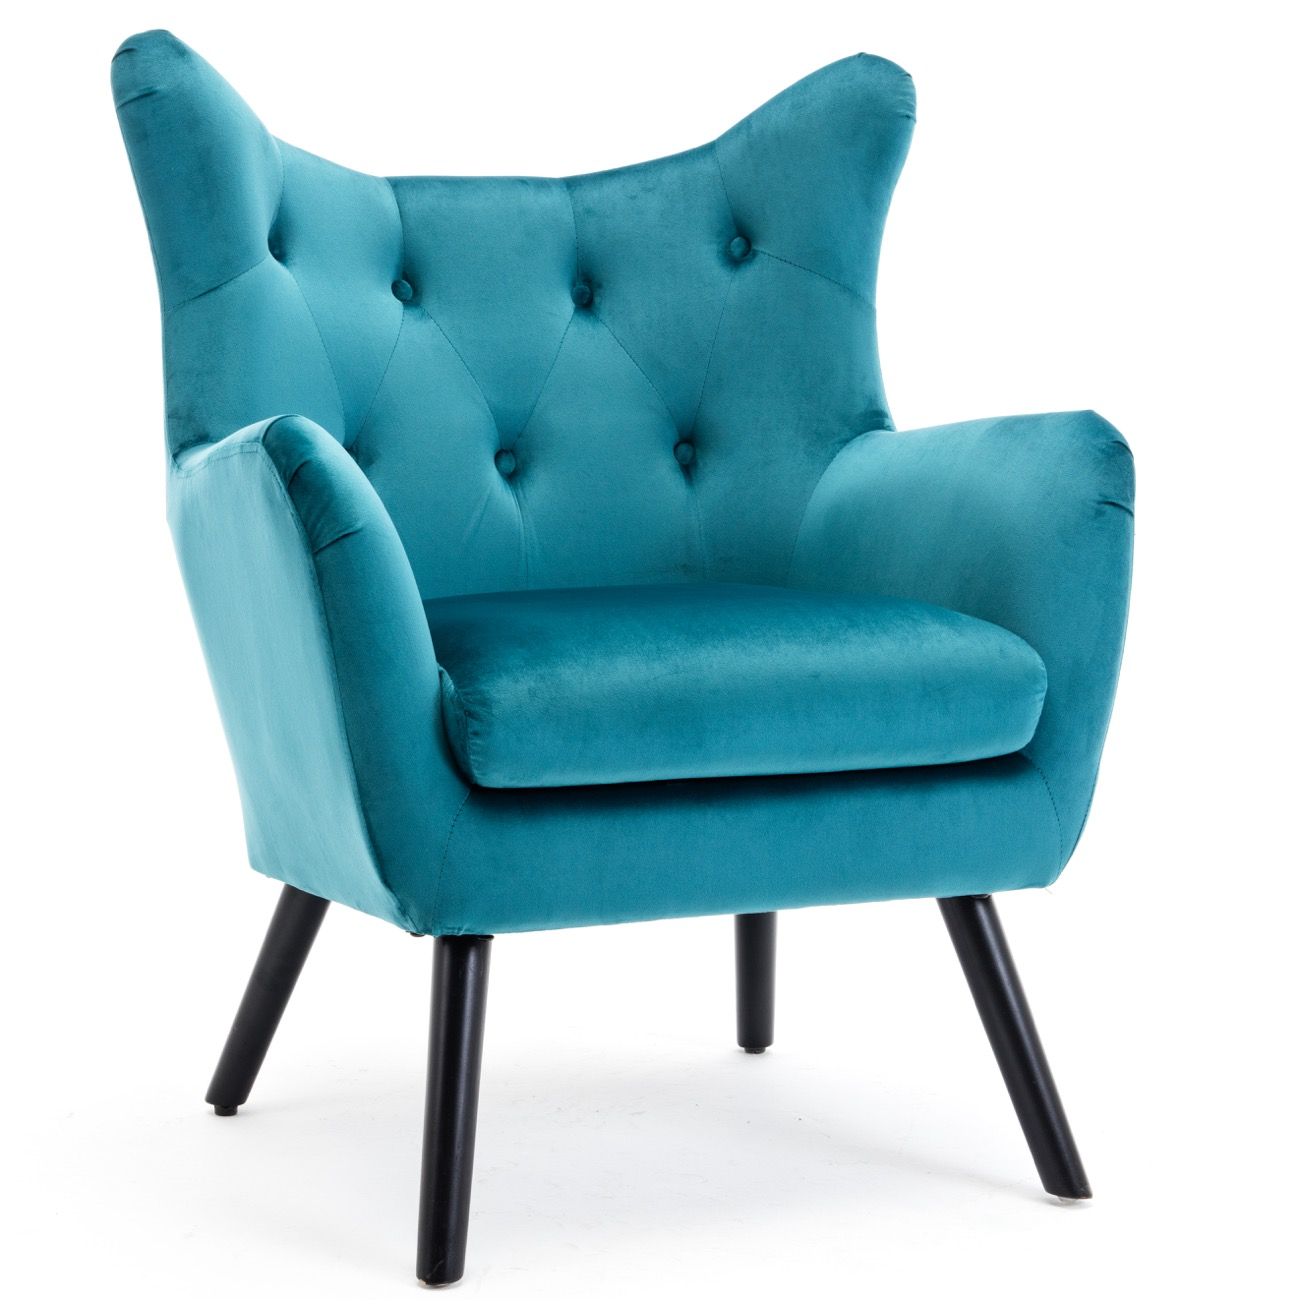 BELLEZE Mid Century Wing Back Chair Tufted Wood Leg Wood Frame Polyester Arm Curved, Teal